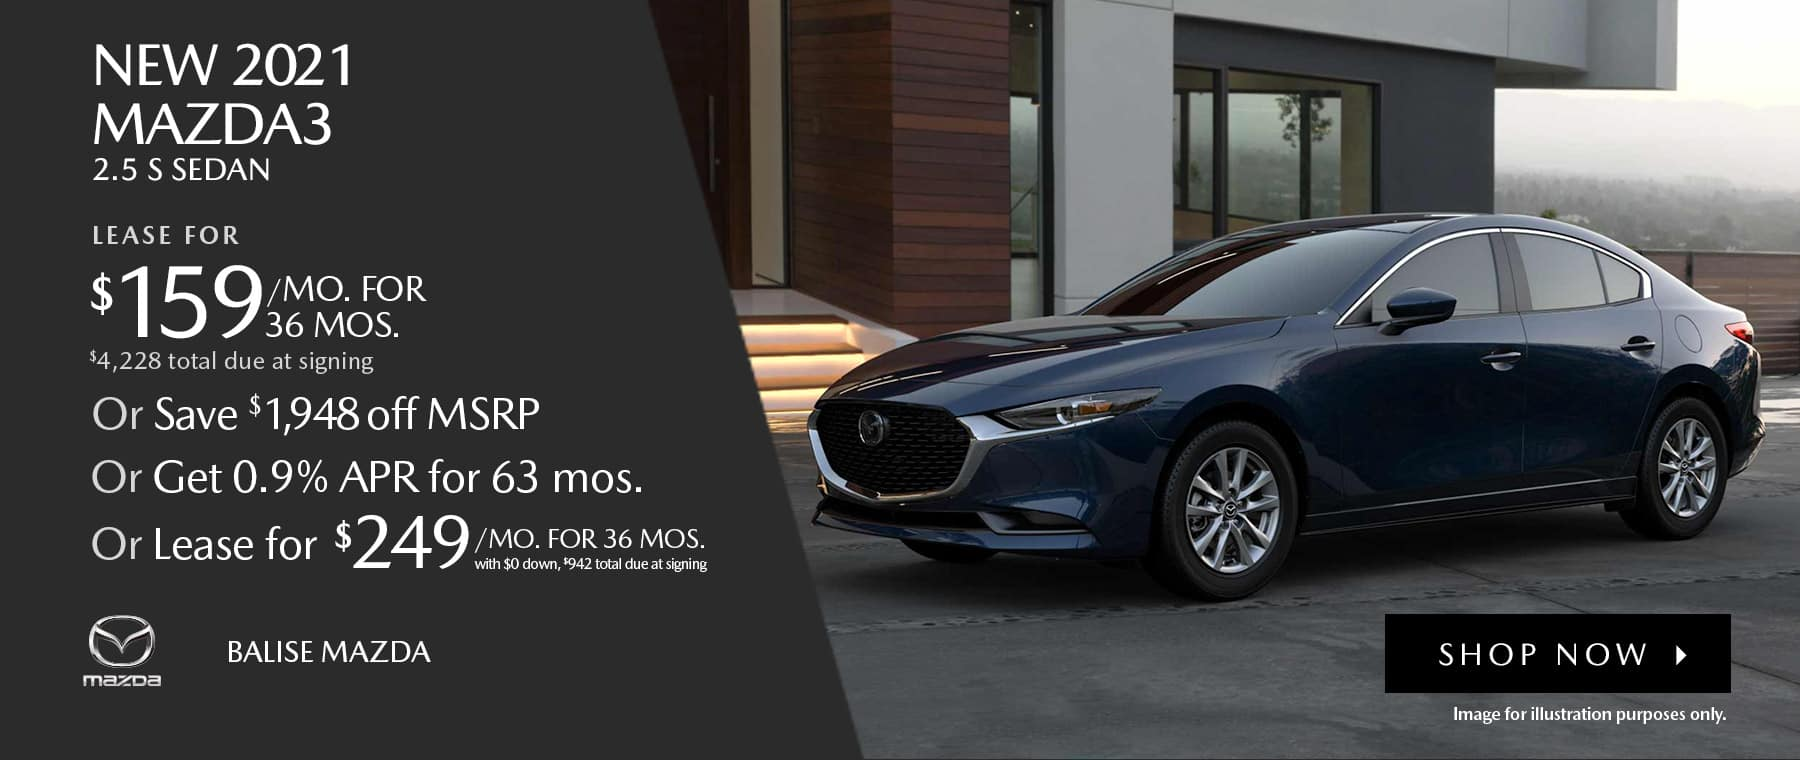 BMAZ-HomePageBanner-1800×760- New 2021Mazda3 Sedan_0121